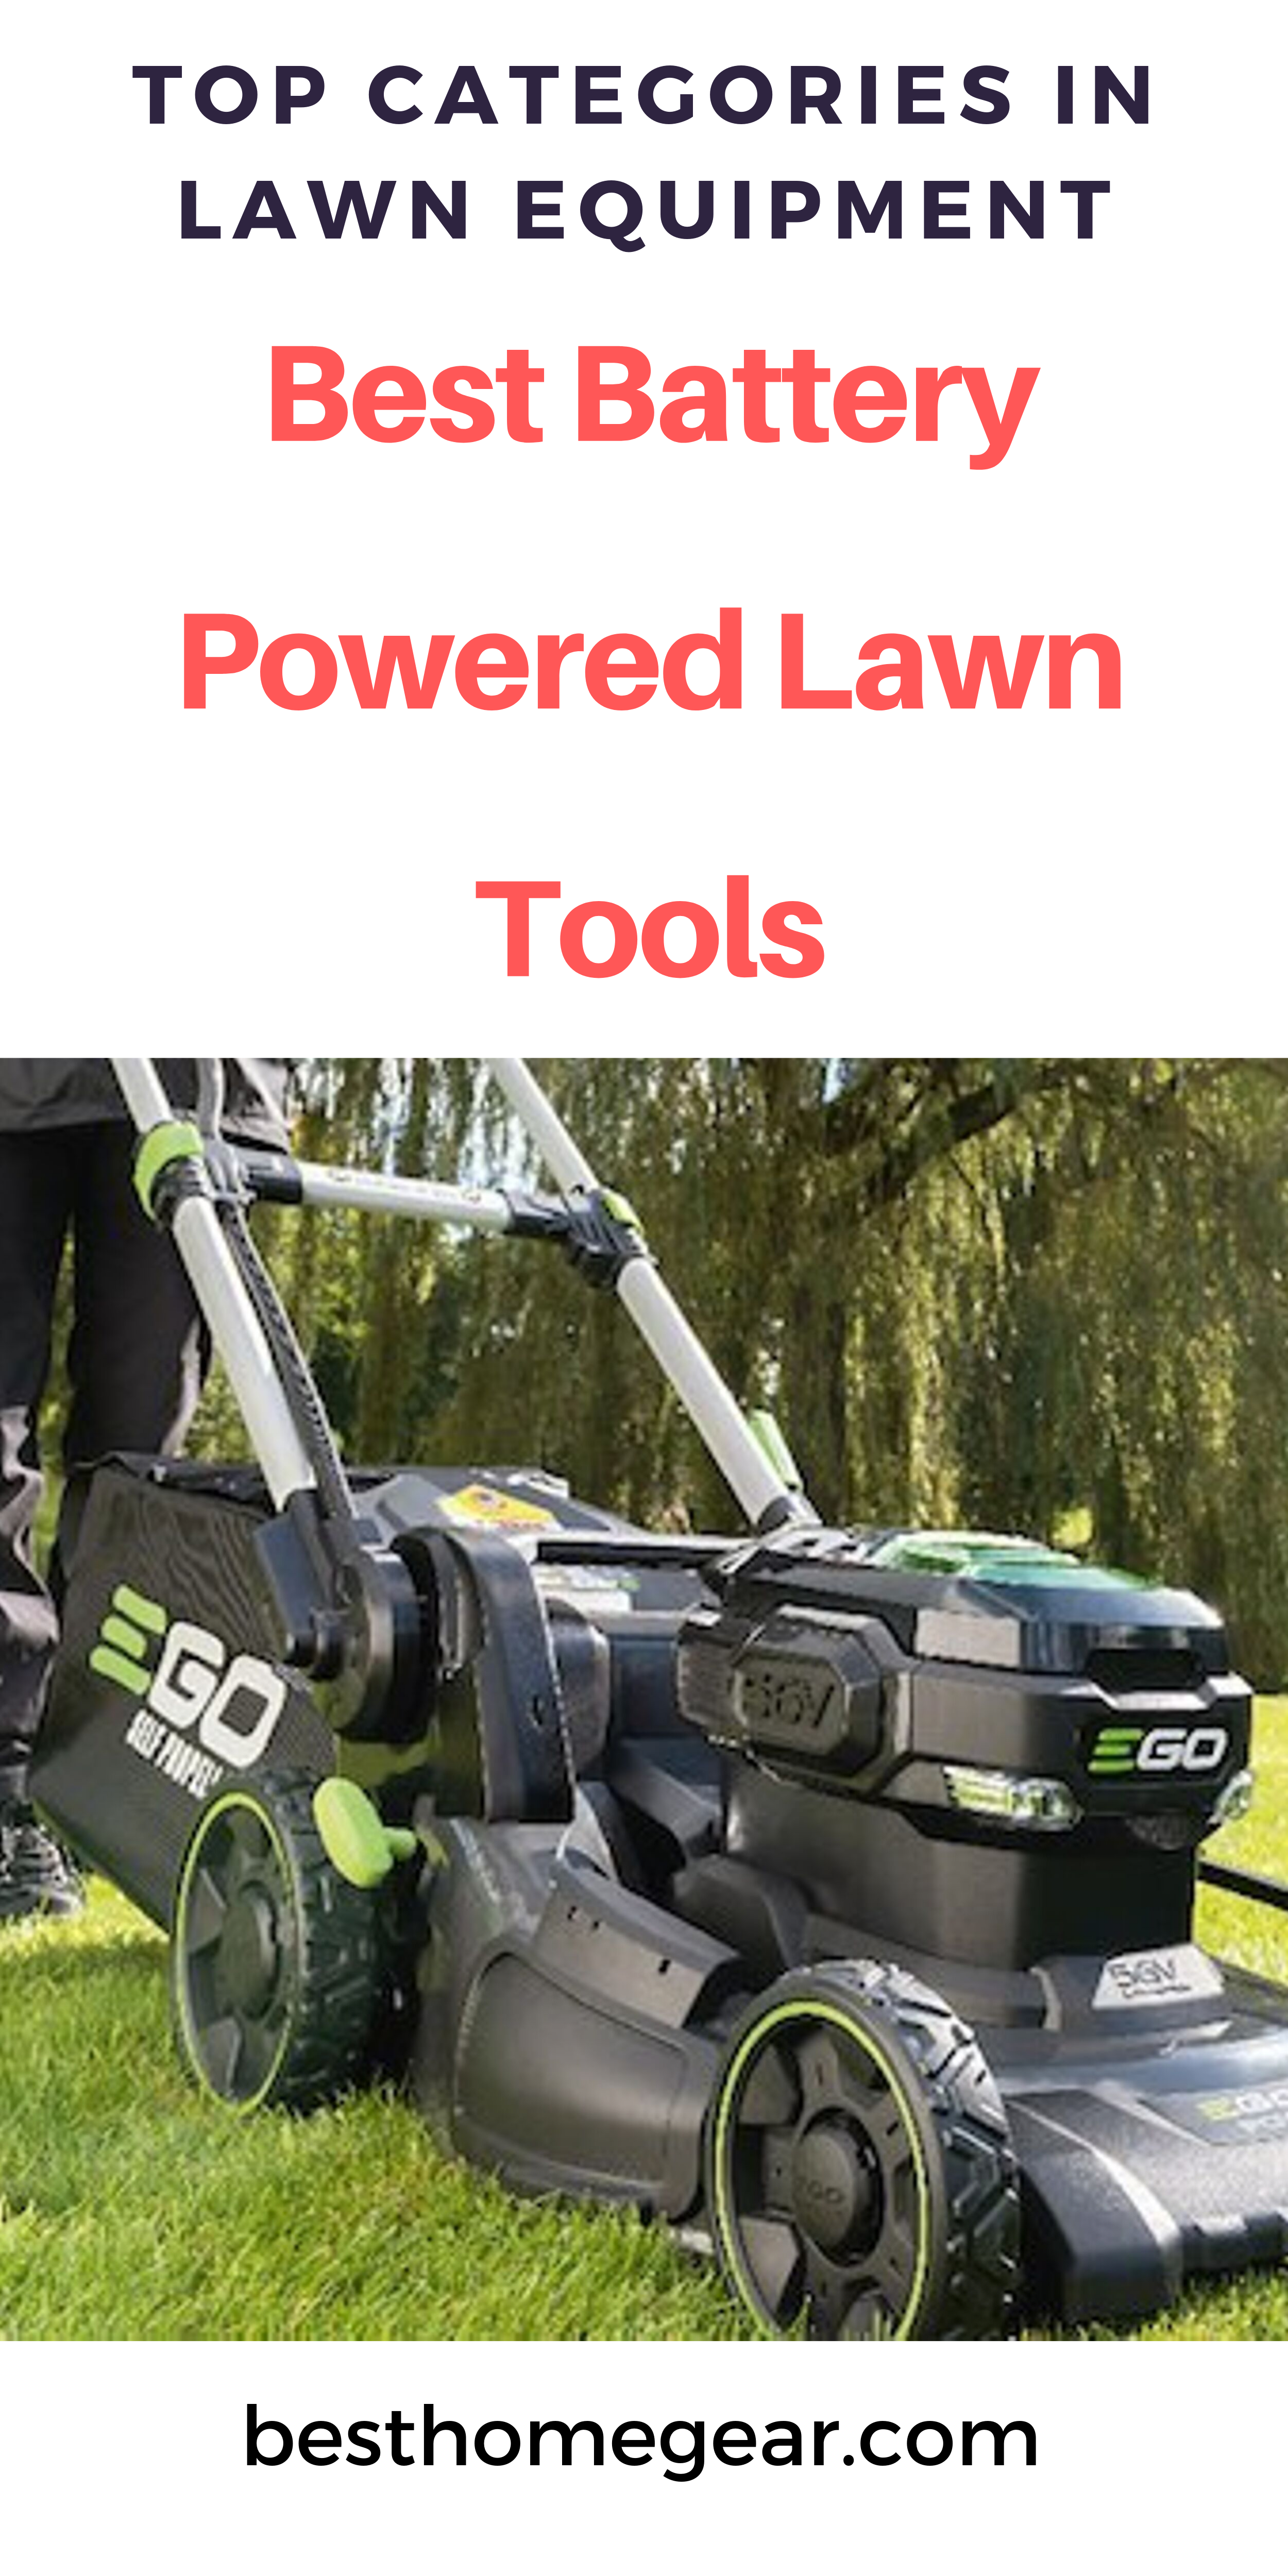 Best Battery Ed Lawn Tools The